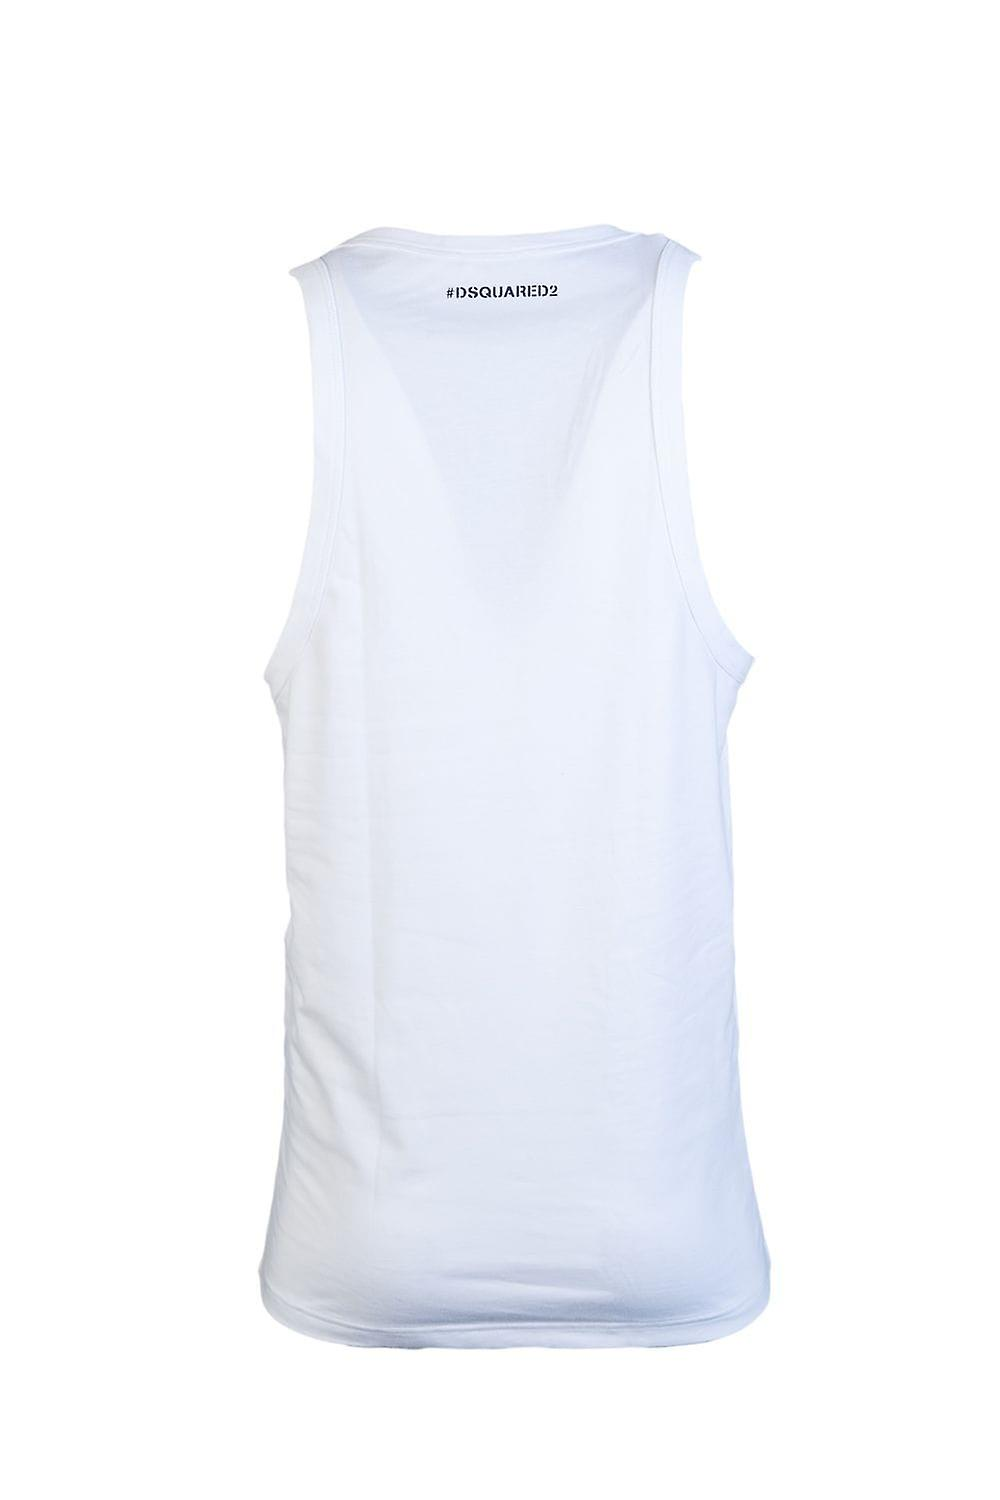 Dsquared Round Neck T Shirt D9D202290